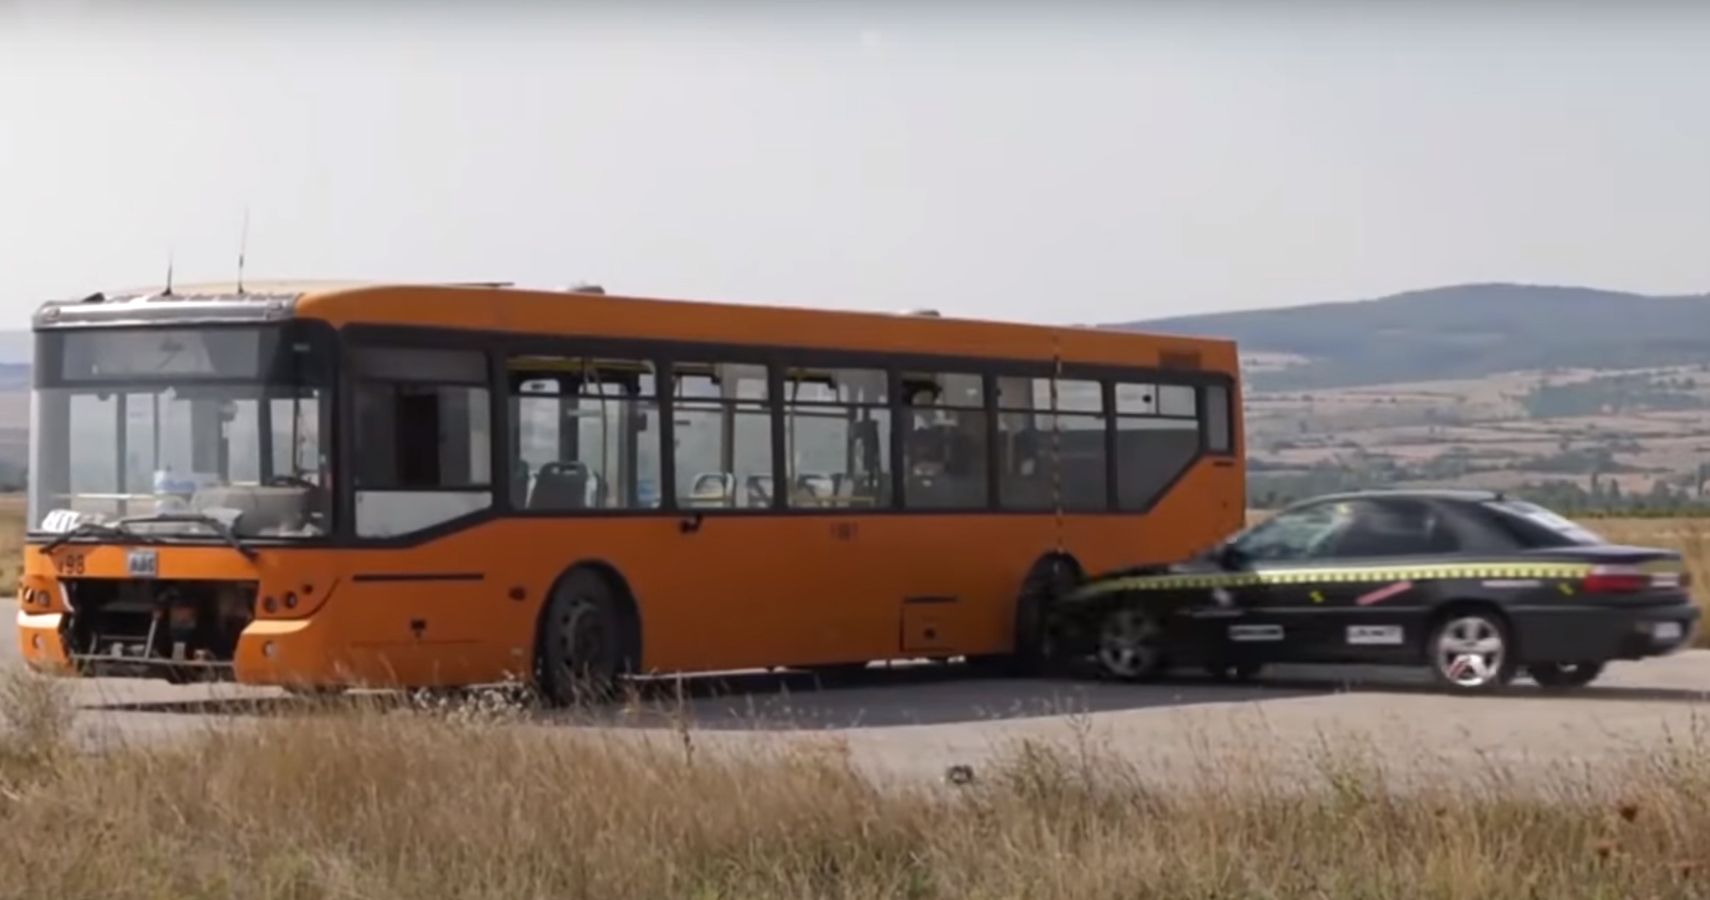 Watch The Impact A Driverless Sedan Makes Smashing Into A Bus At 129 MPH